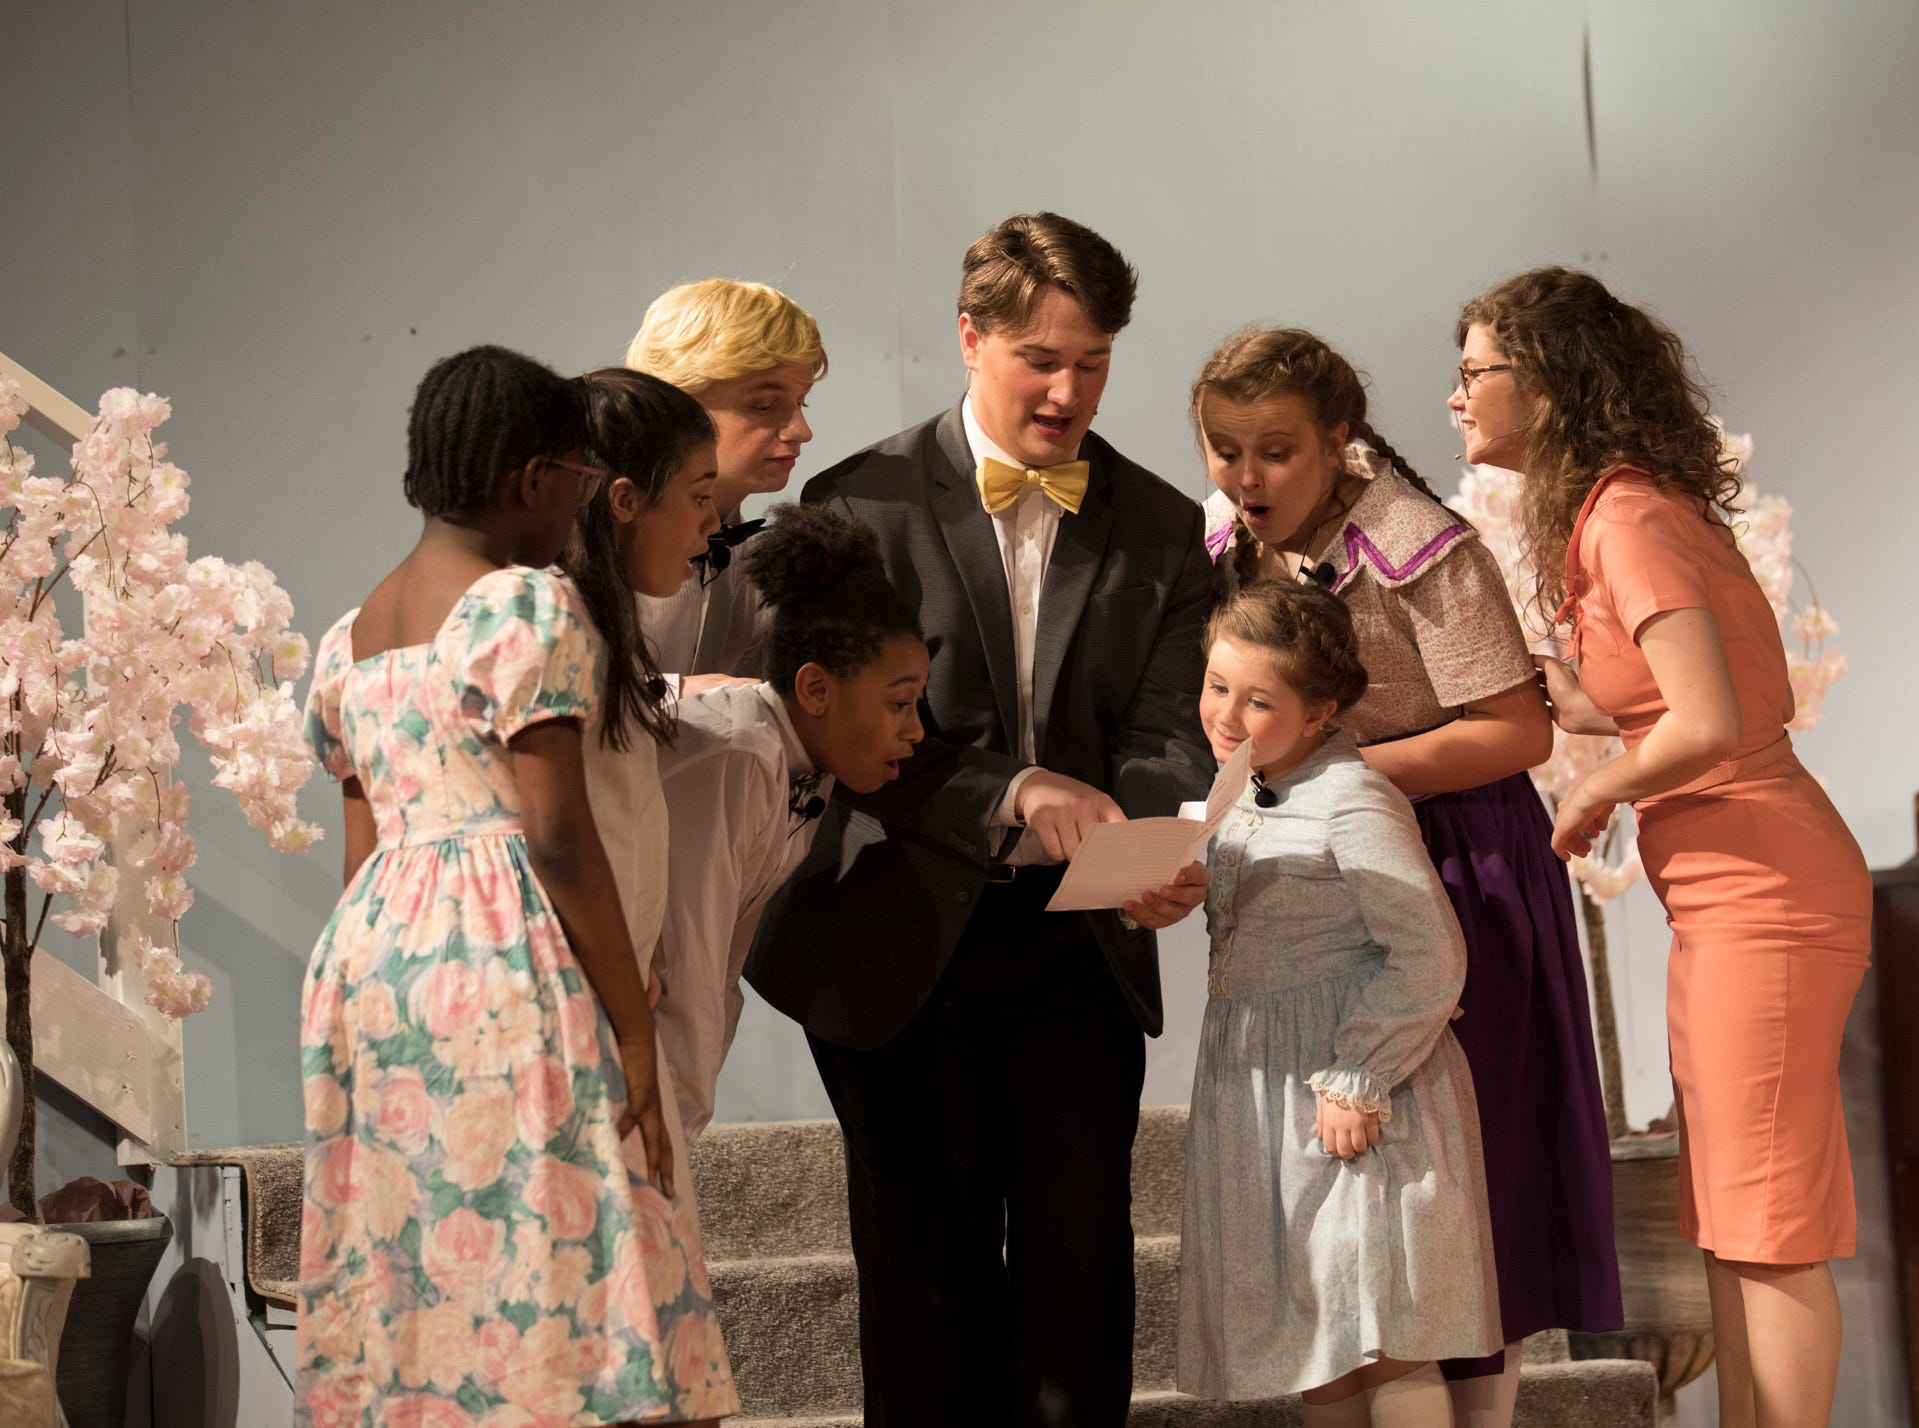 The von Trapp children become overjoyed after seeing they have been included to sing in the Kaltzberg Festival by Captain von Trapp's friend Max Detweiler, played by Seth Truman, who is a music agent and producer.